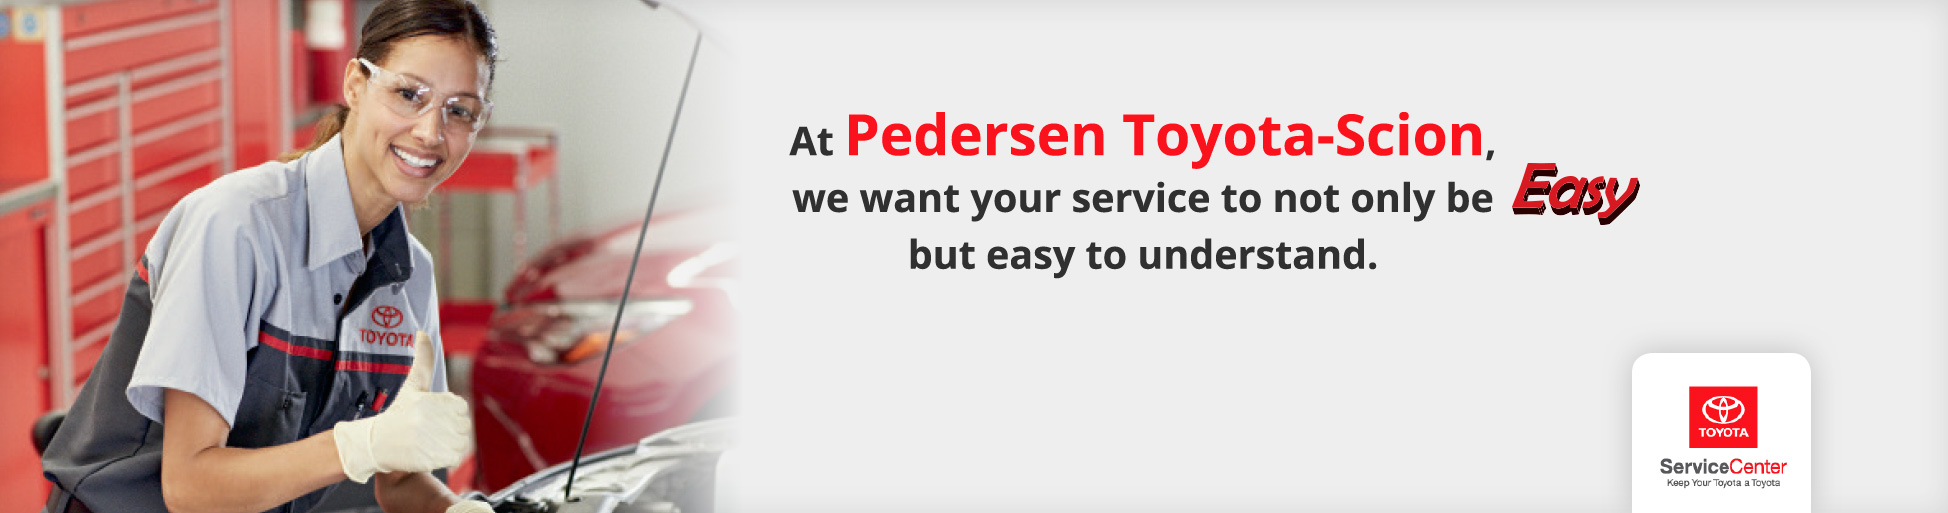 Fort collins toyota vehicle services